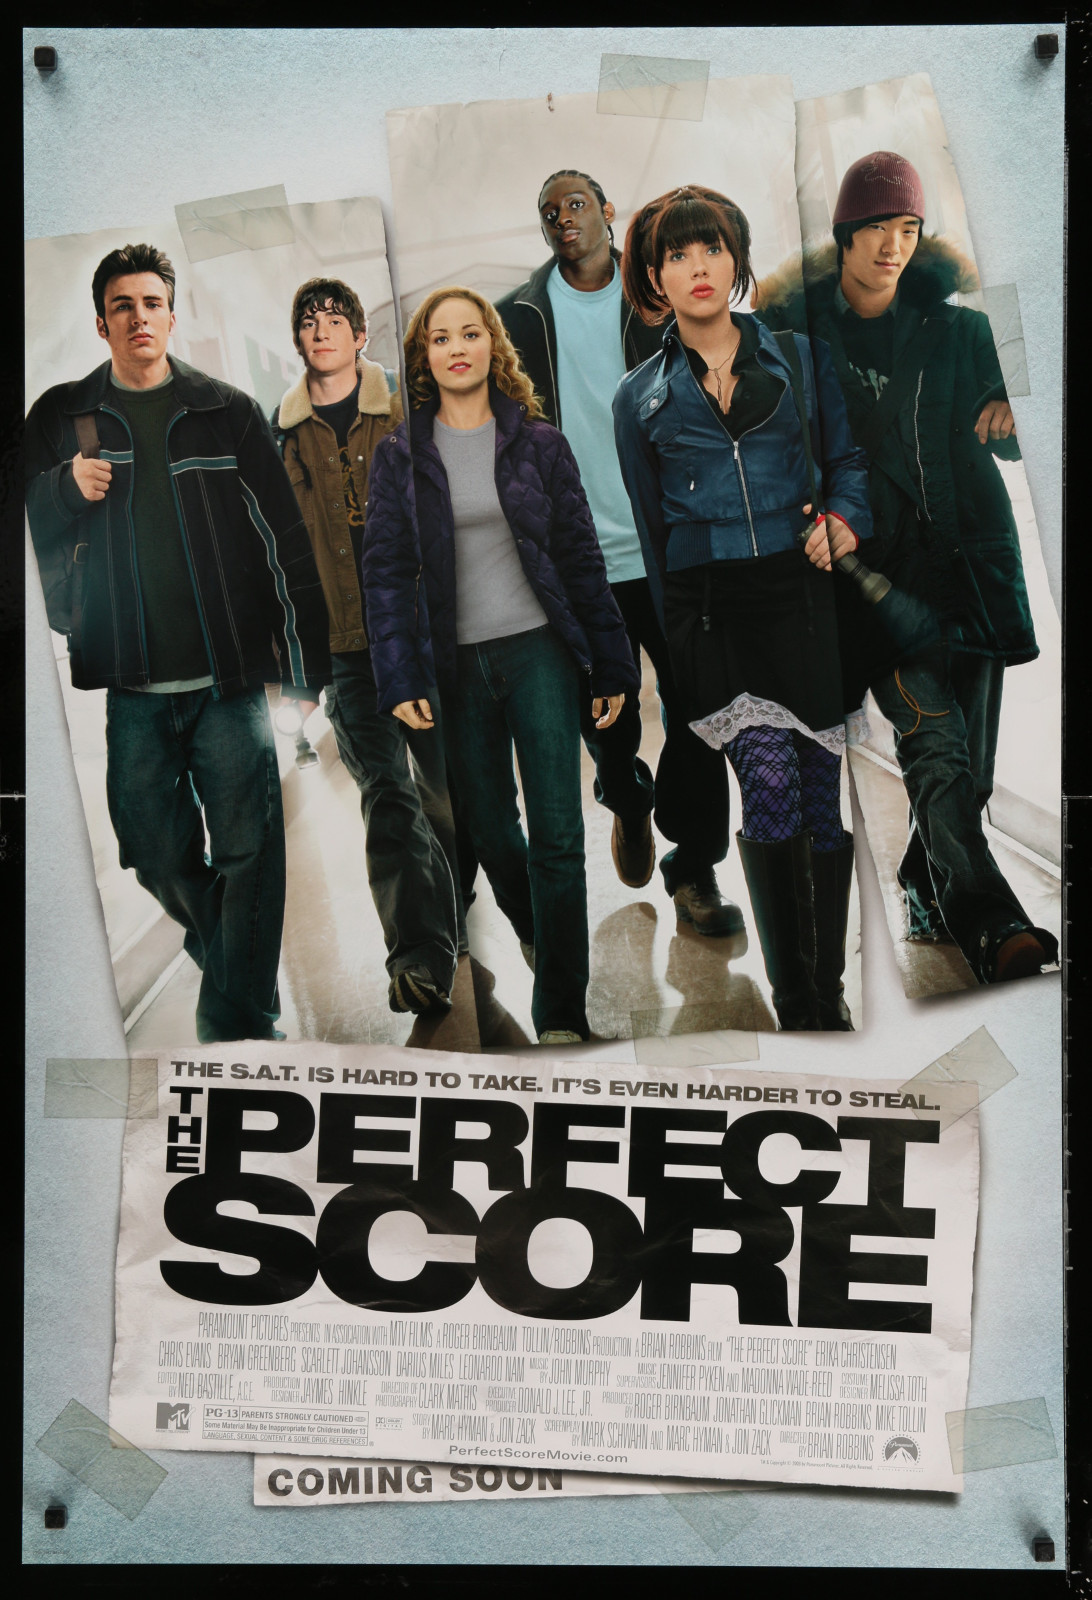 The Perfect Score 2A414 A Part Of A Lot 20 Unfolded Double-Sided And Single-Sided One-Sheets '80S-90S Great Movie Images!